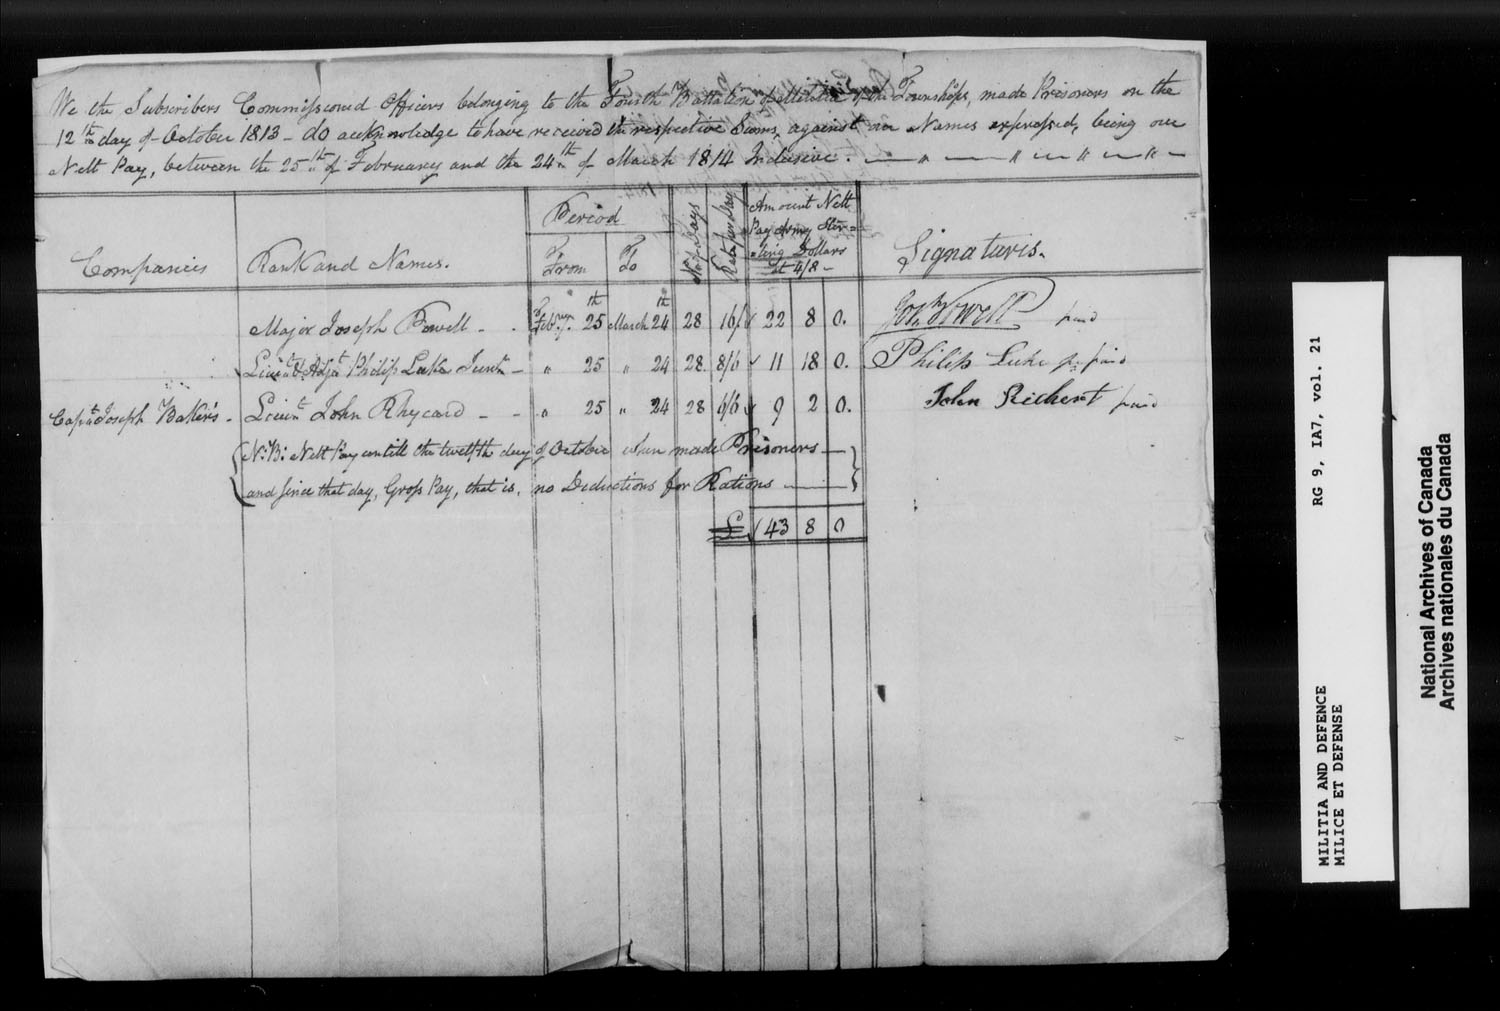 Title: War of 1812: Lower Canada Nominal Rolls and Paylists, RG 9 1A7 - Mikan Number: 133532 - Microform: t-10378